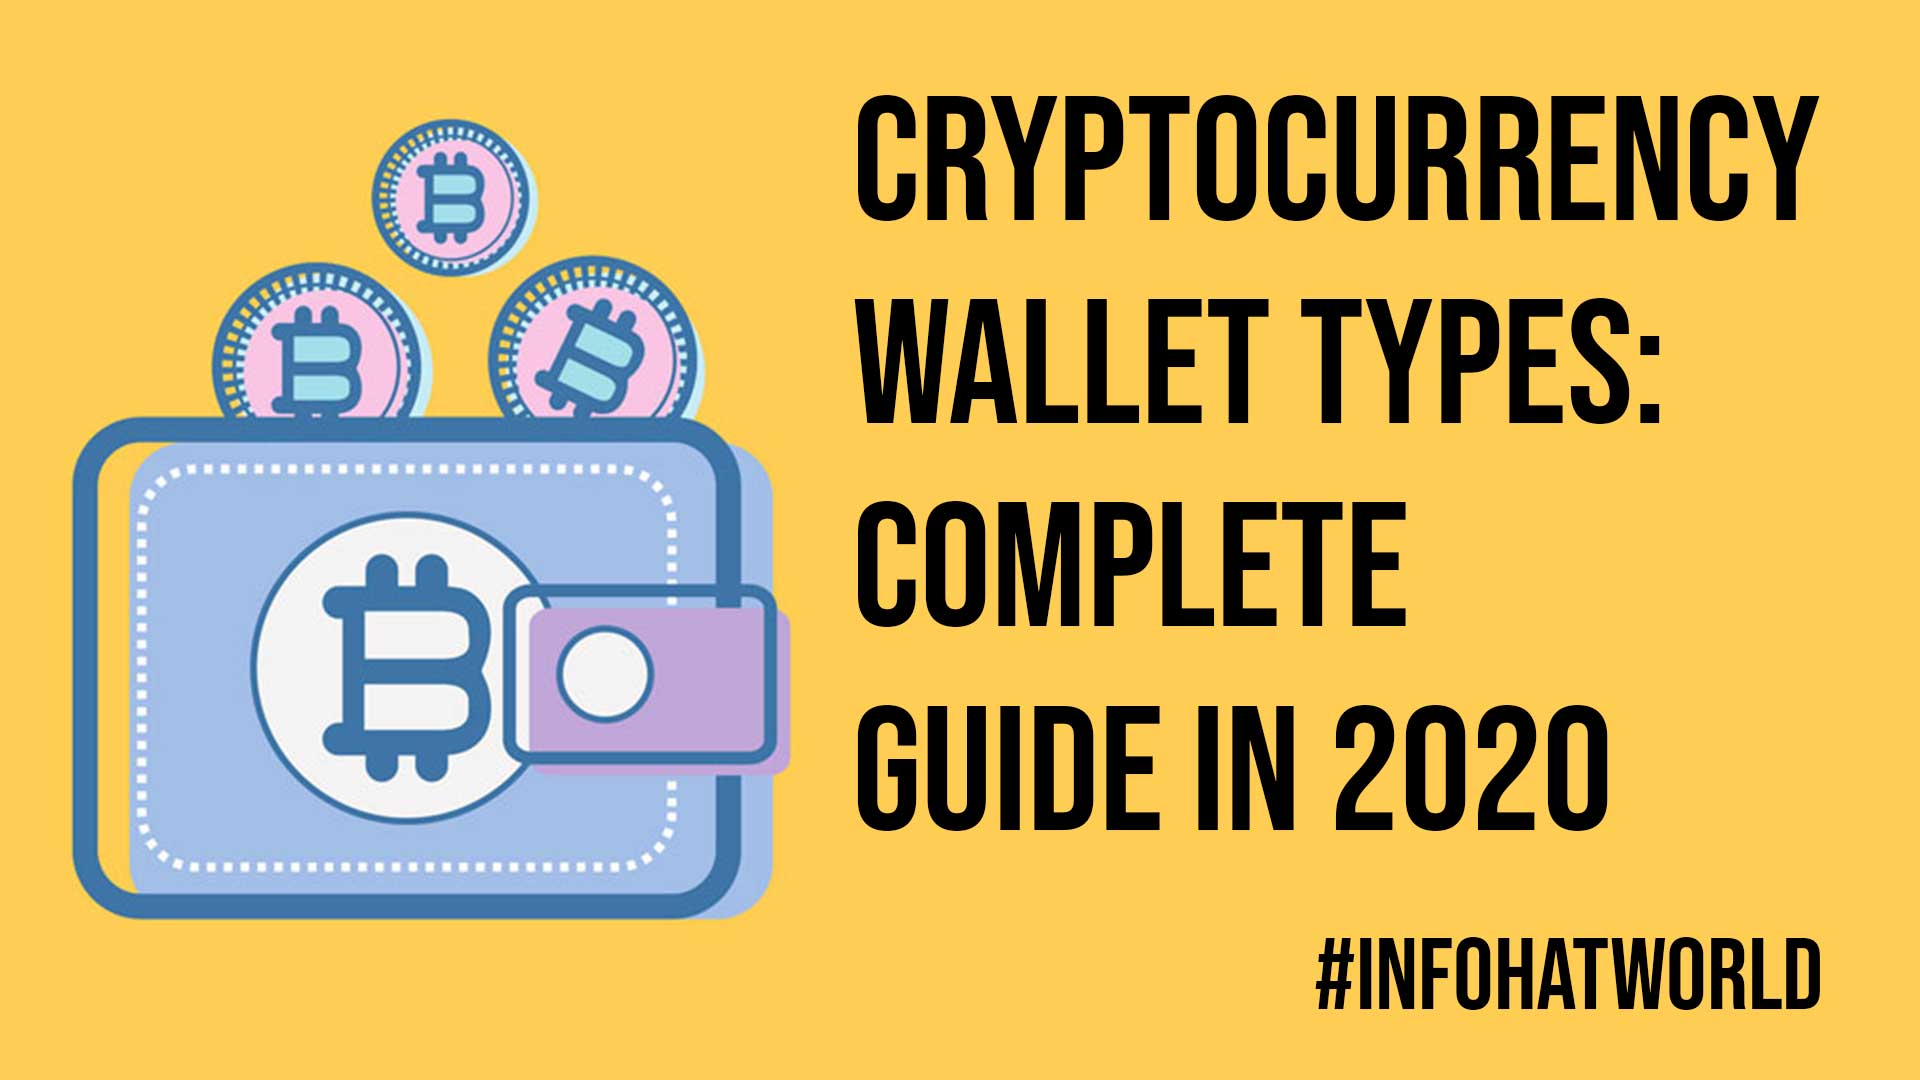 Cryptocurrency Wallet Types Complete Guide in 2020